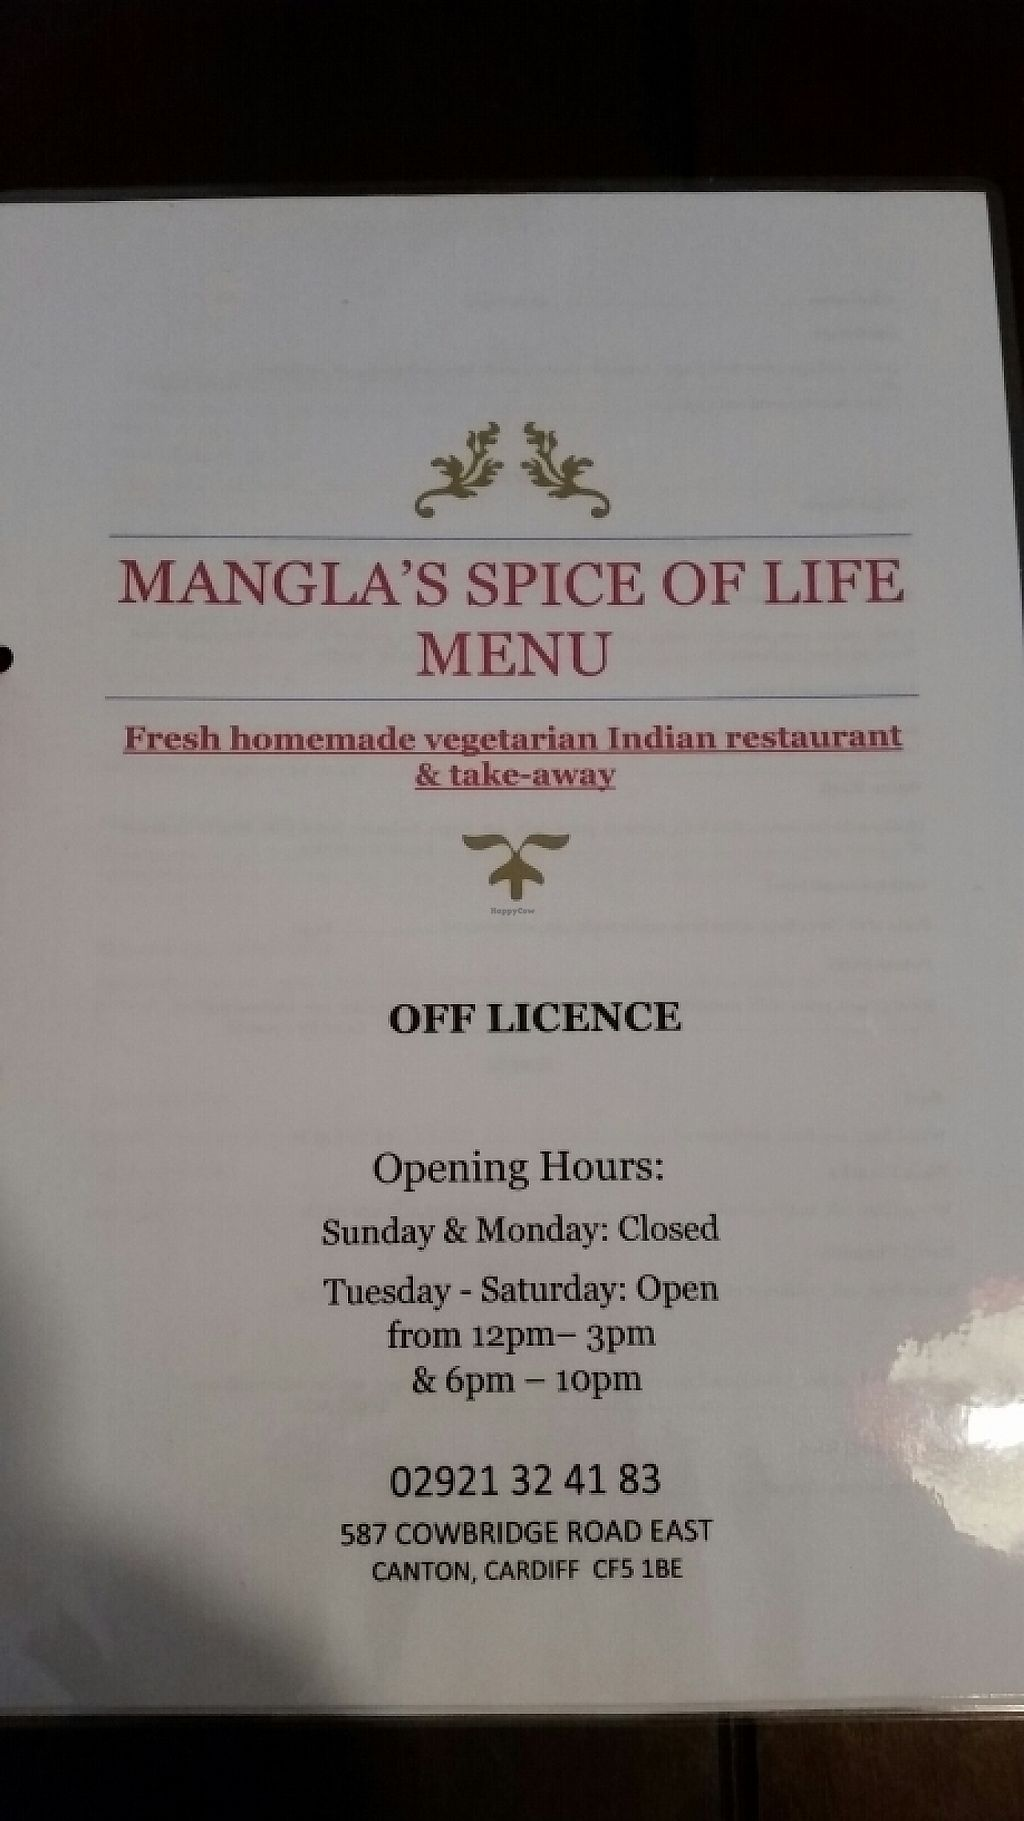 """Photo of Mangla's Spice of Life  by <a href=""""/members/profile/konlish"""">konlish</a> <br/>Front of Menu <br/> May 6, 2017  - <a href='/contact/abuse/image/91540/256353'>Report</a>"""